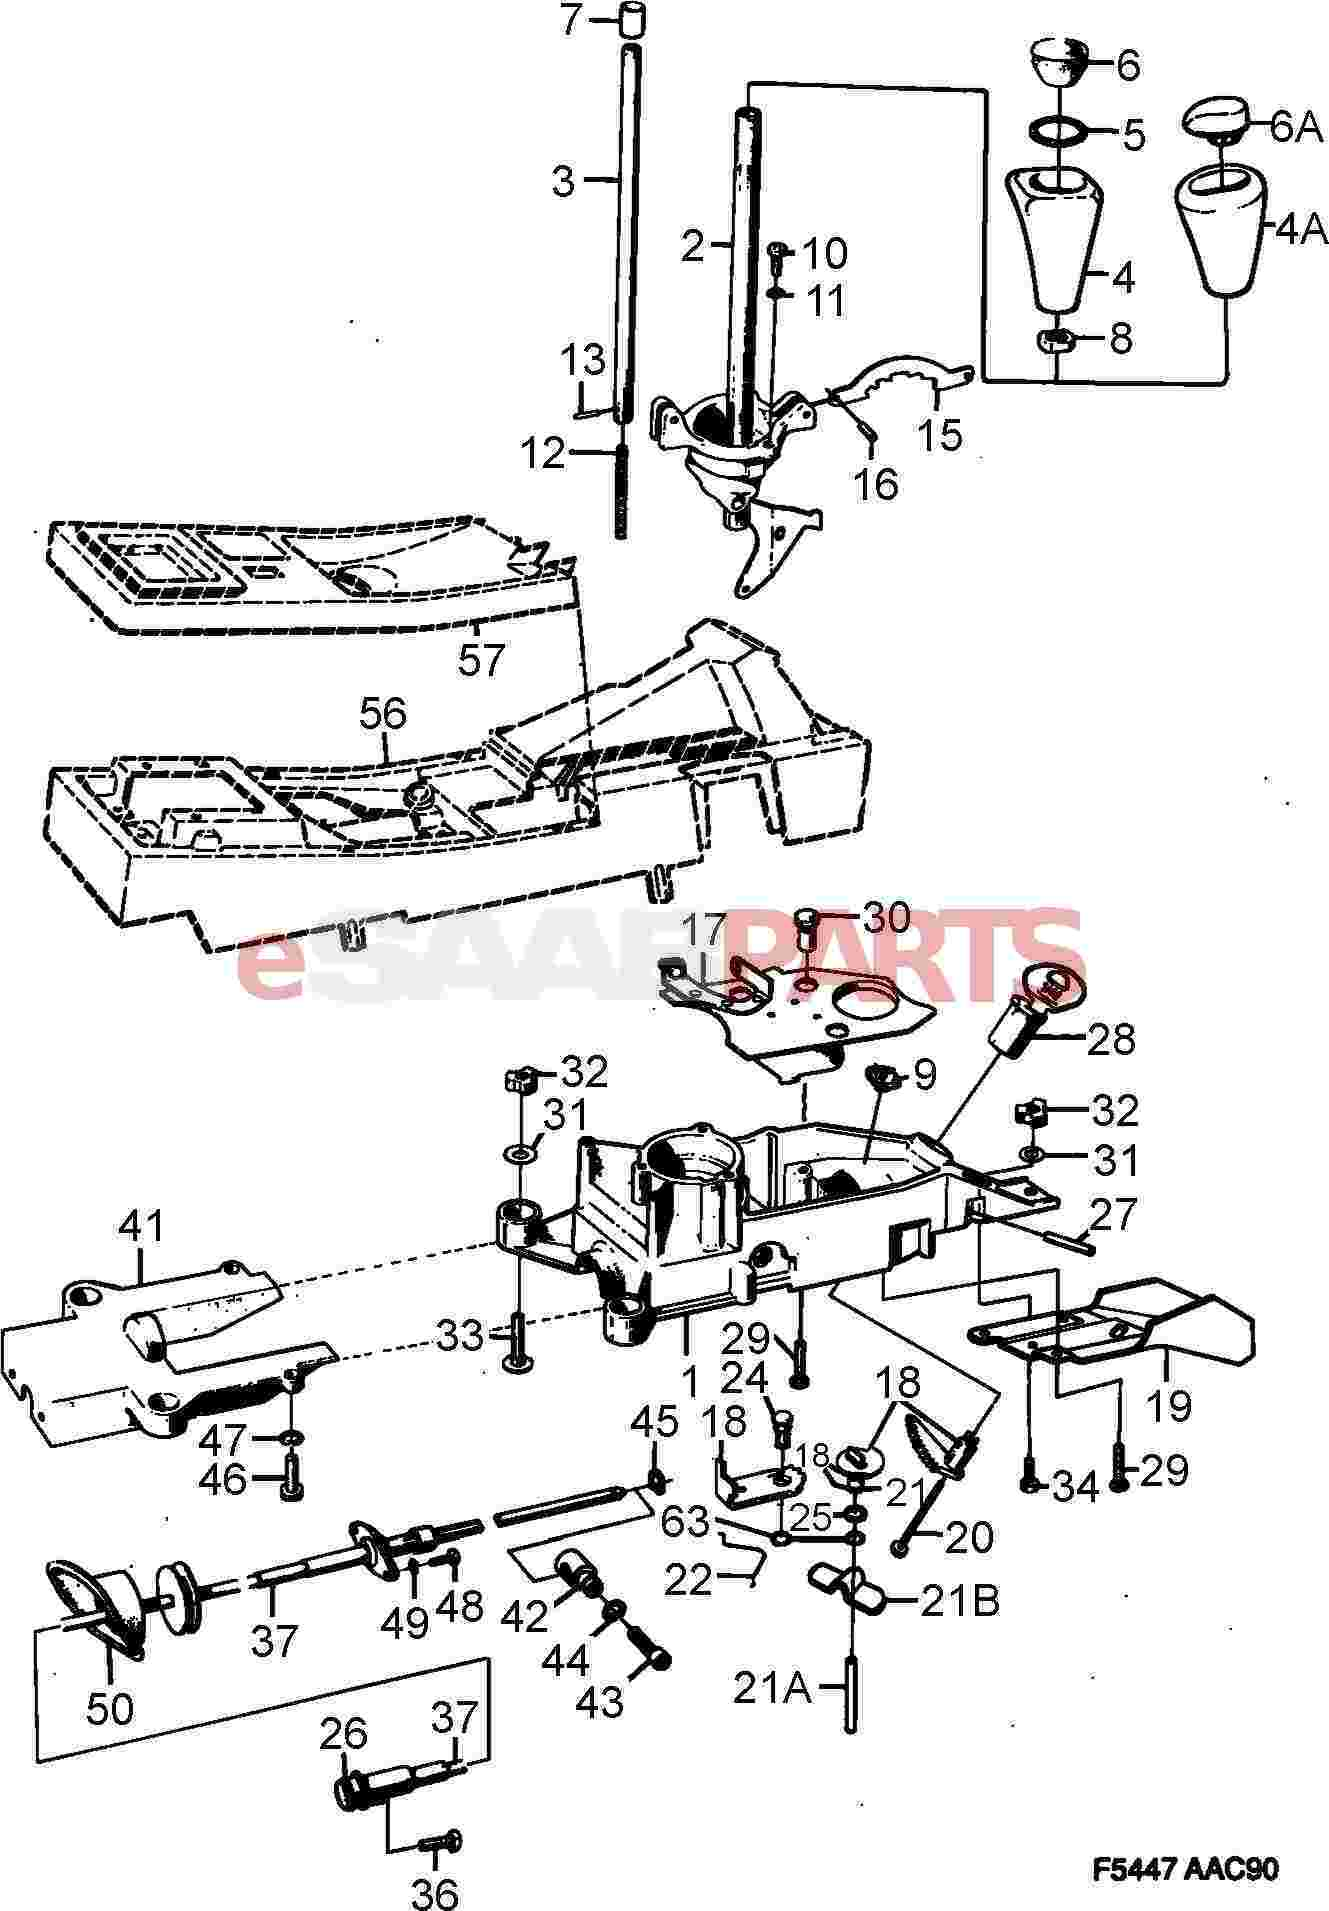 1990 Saab 900 Transmission Diagram Basic Guide Wiring Esaabparts Com U003e Parts Rh Cooling Fan Dimensions 1989 Shifter